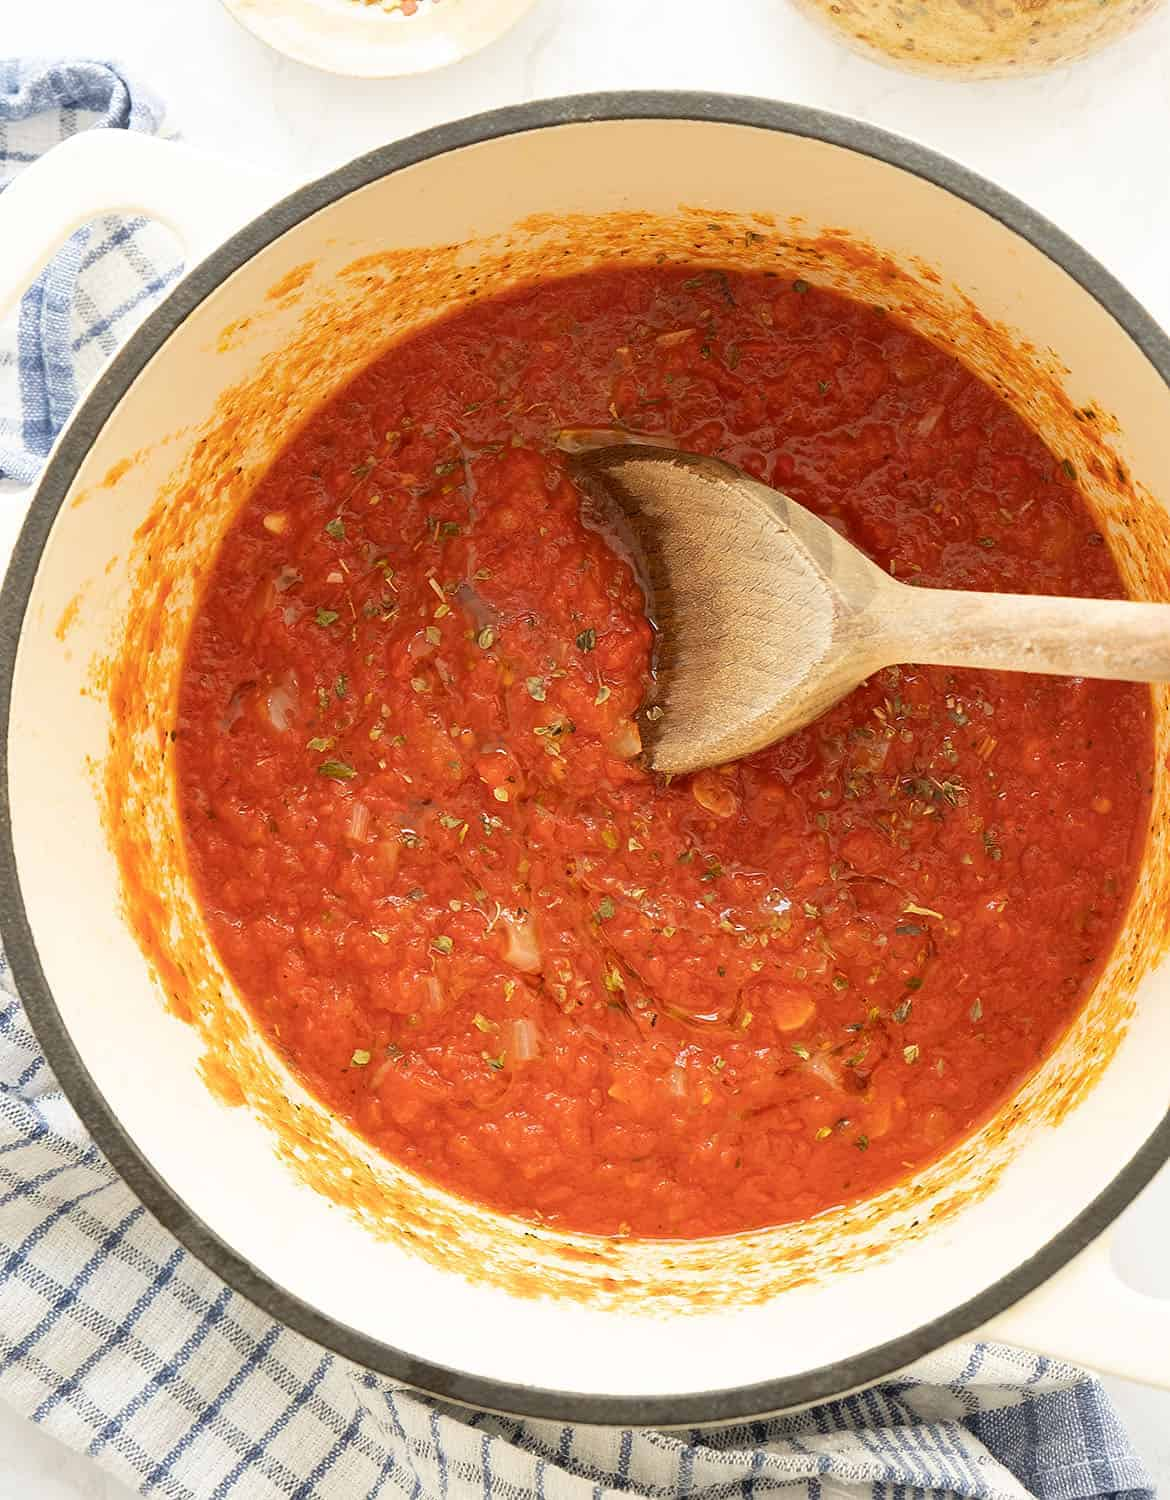 Italian marinara sauce in a white casserole with a wooden spoon.